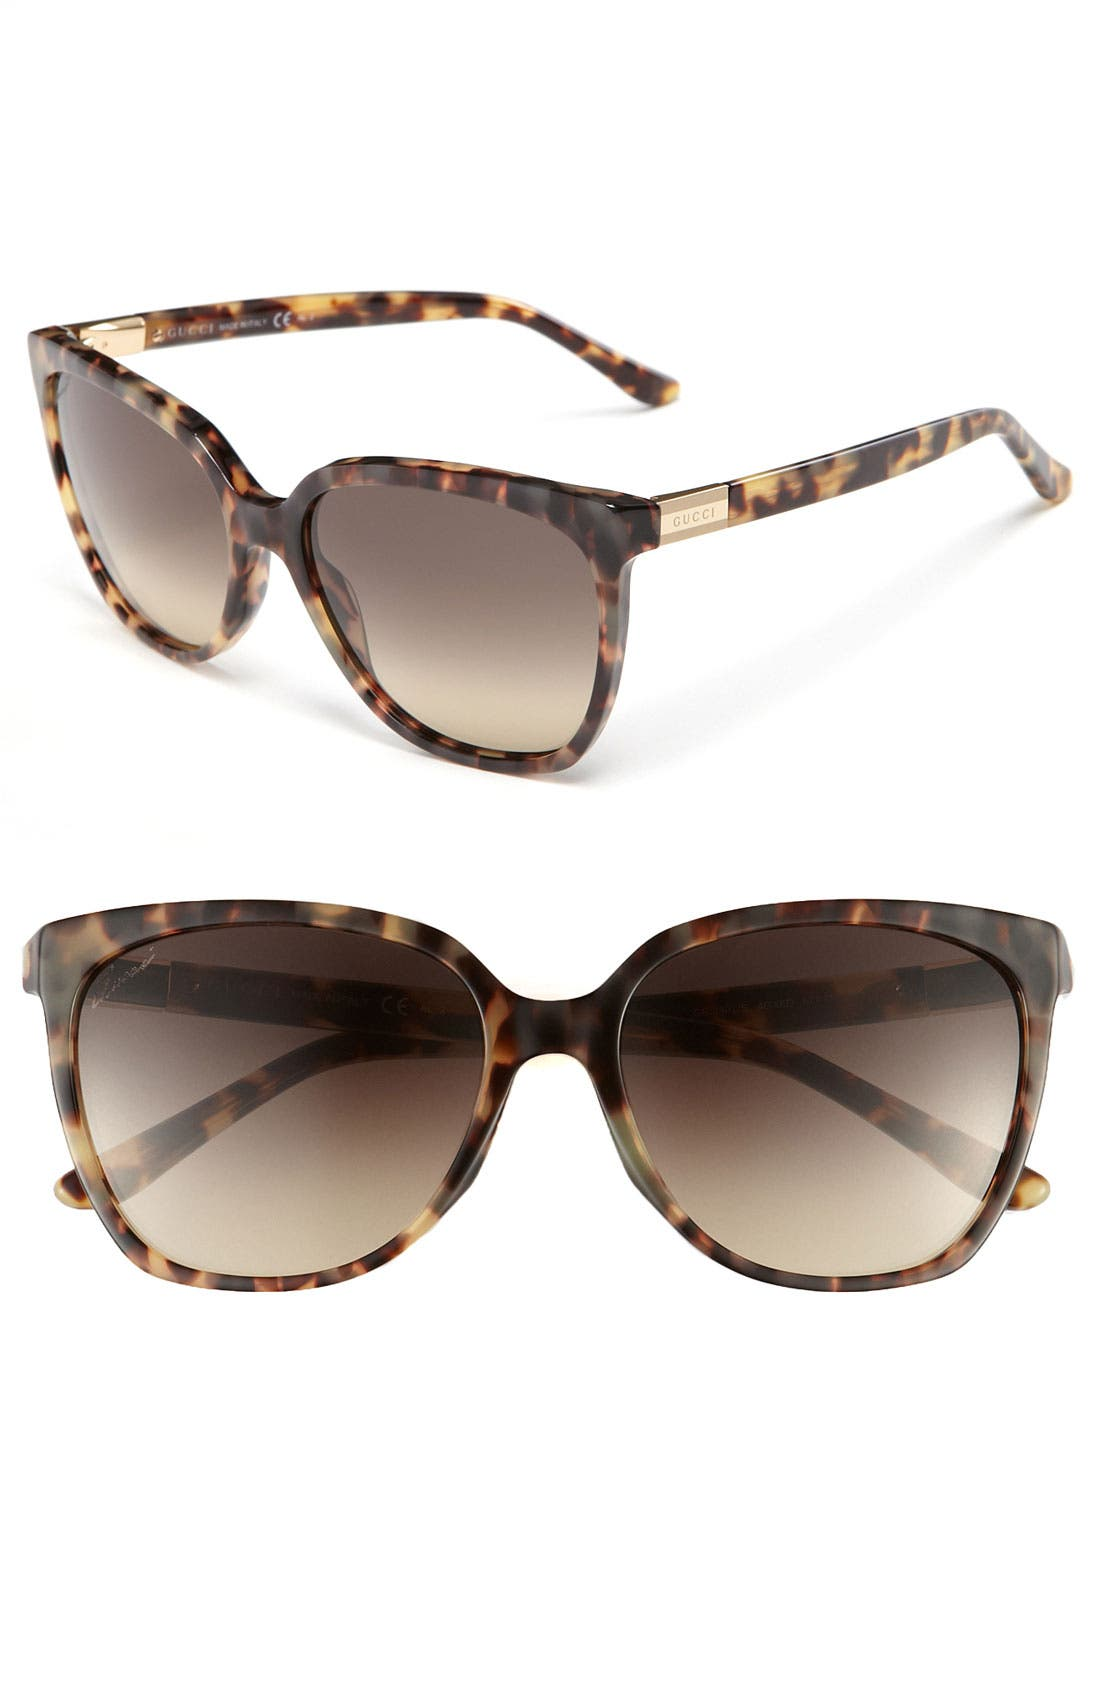 Main Image - Gucci 57mm Oversized Sunglasses